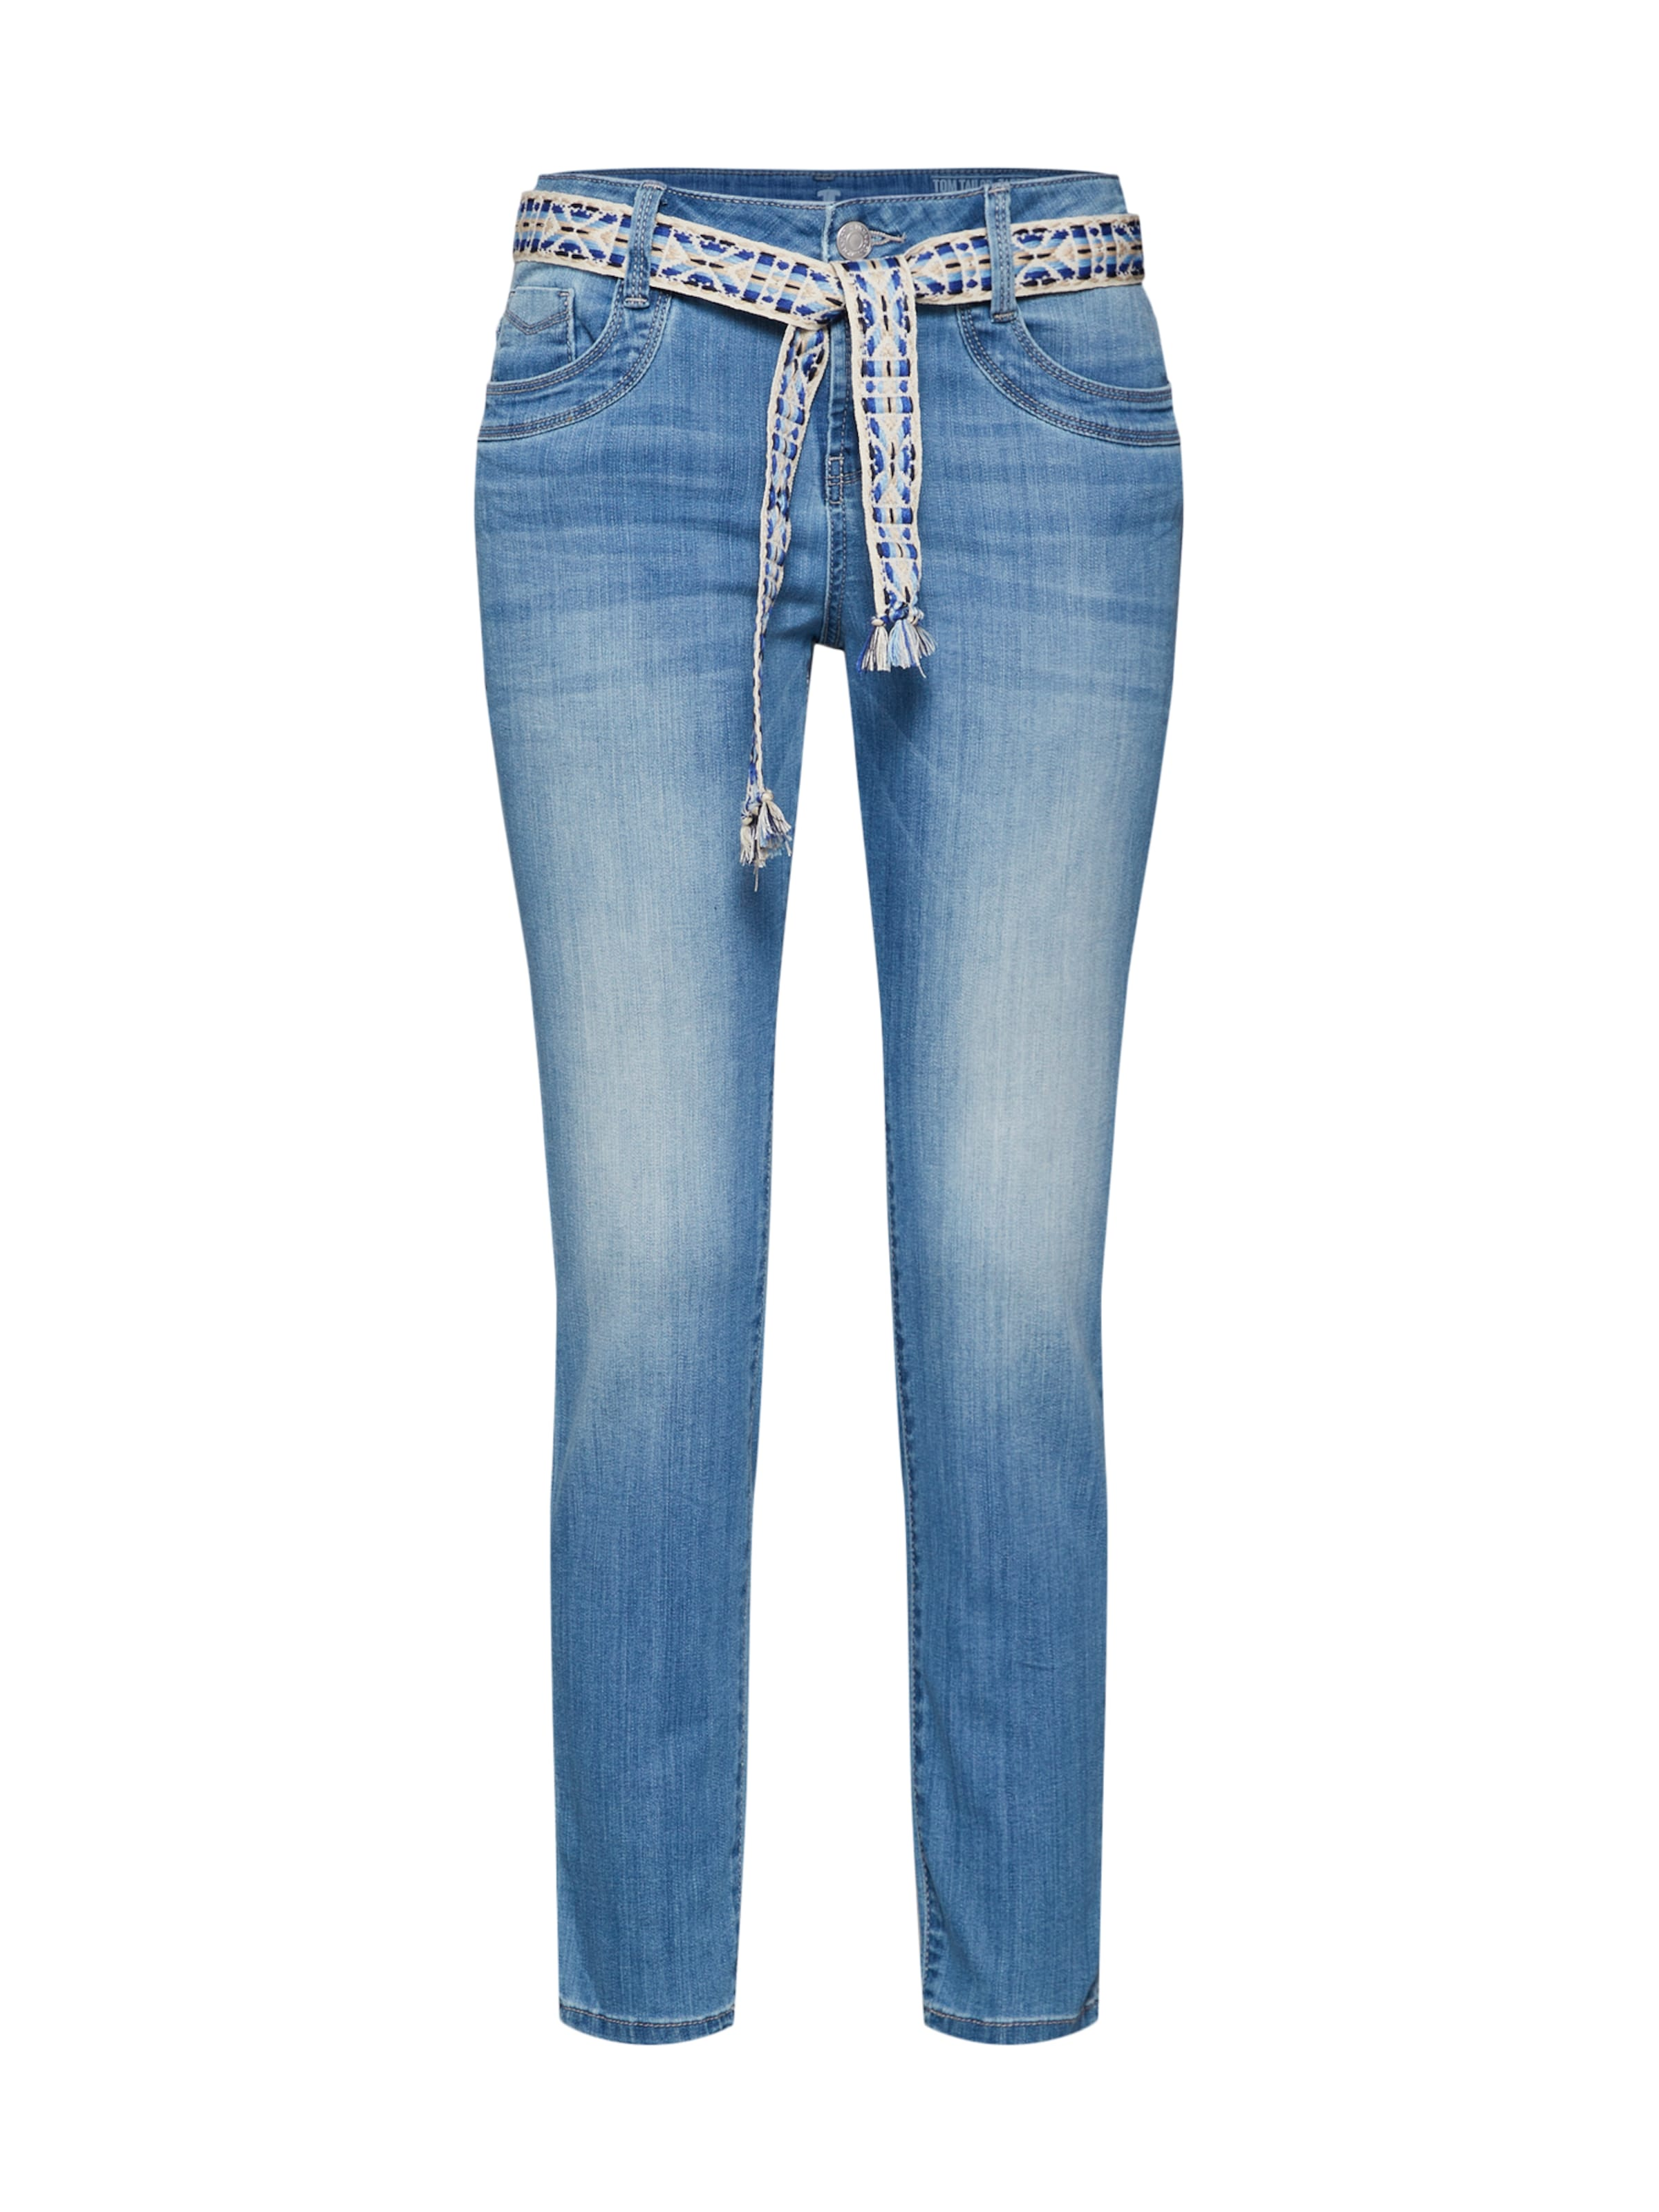 Tom Tailor In 'tom Ankle' Blue Tapered Denim Relaxed Long Jeans wuOkZTXiP